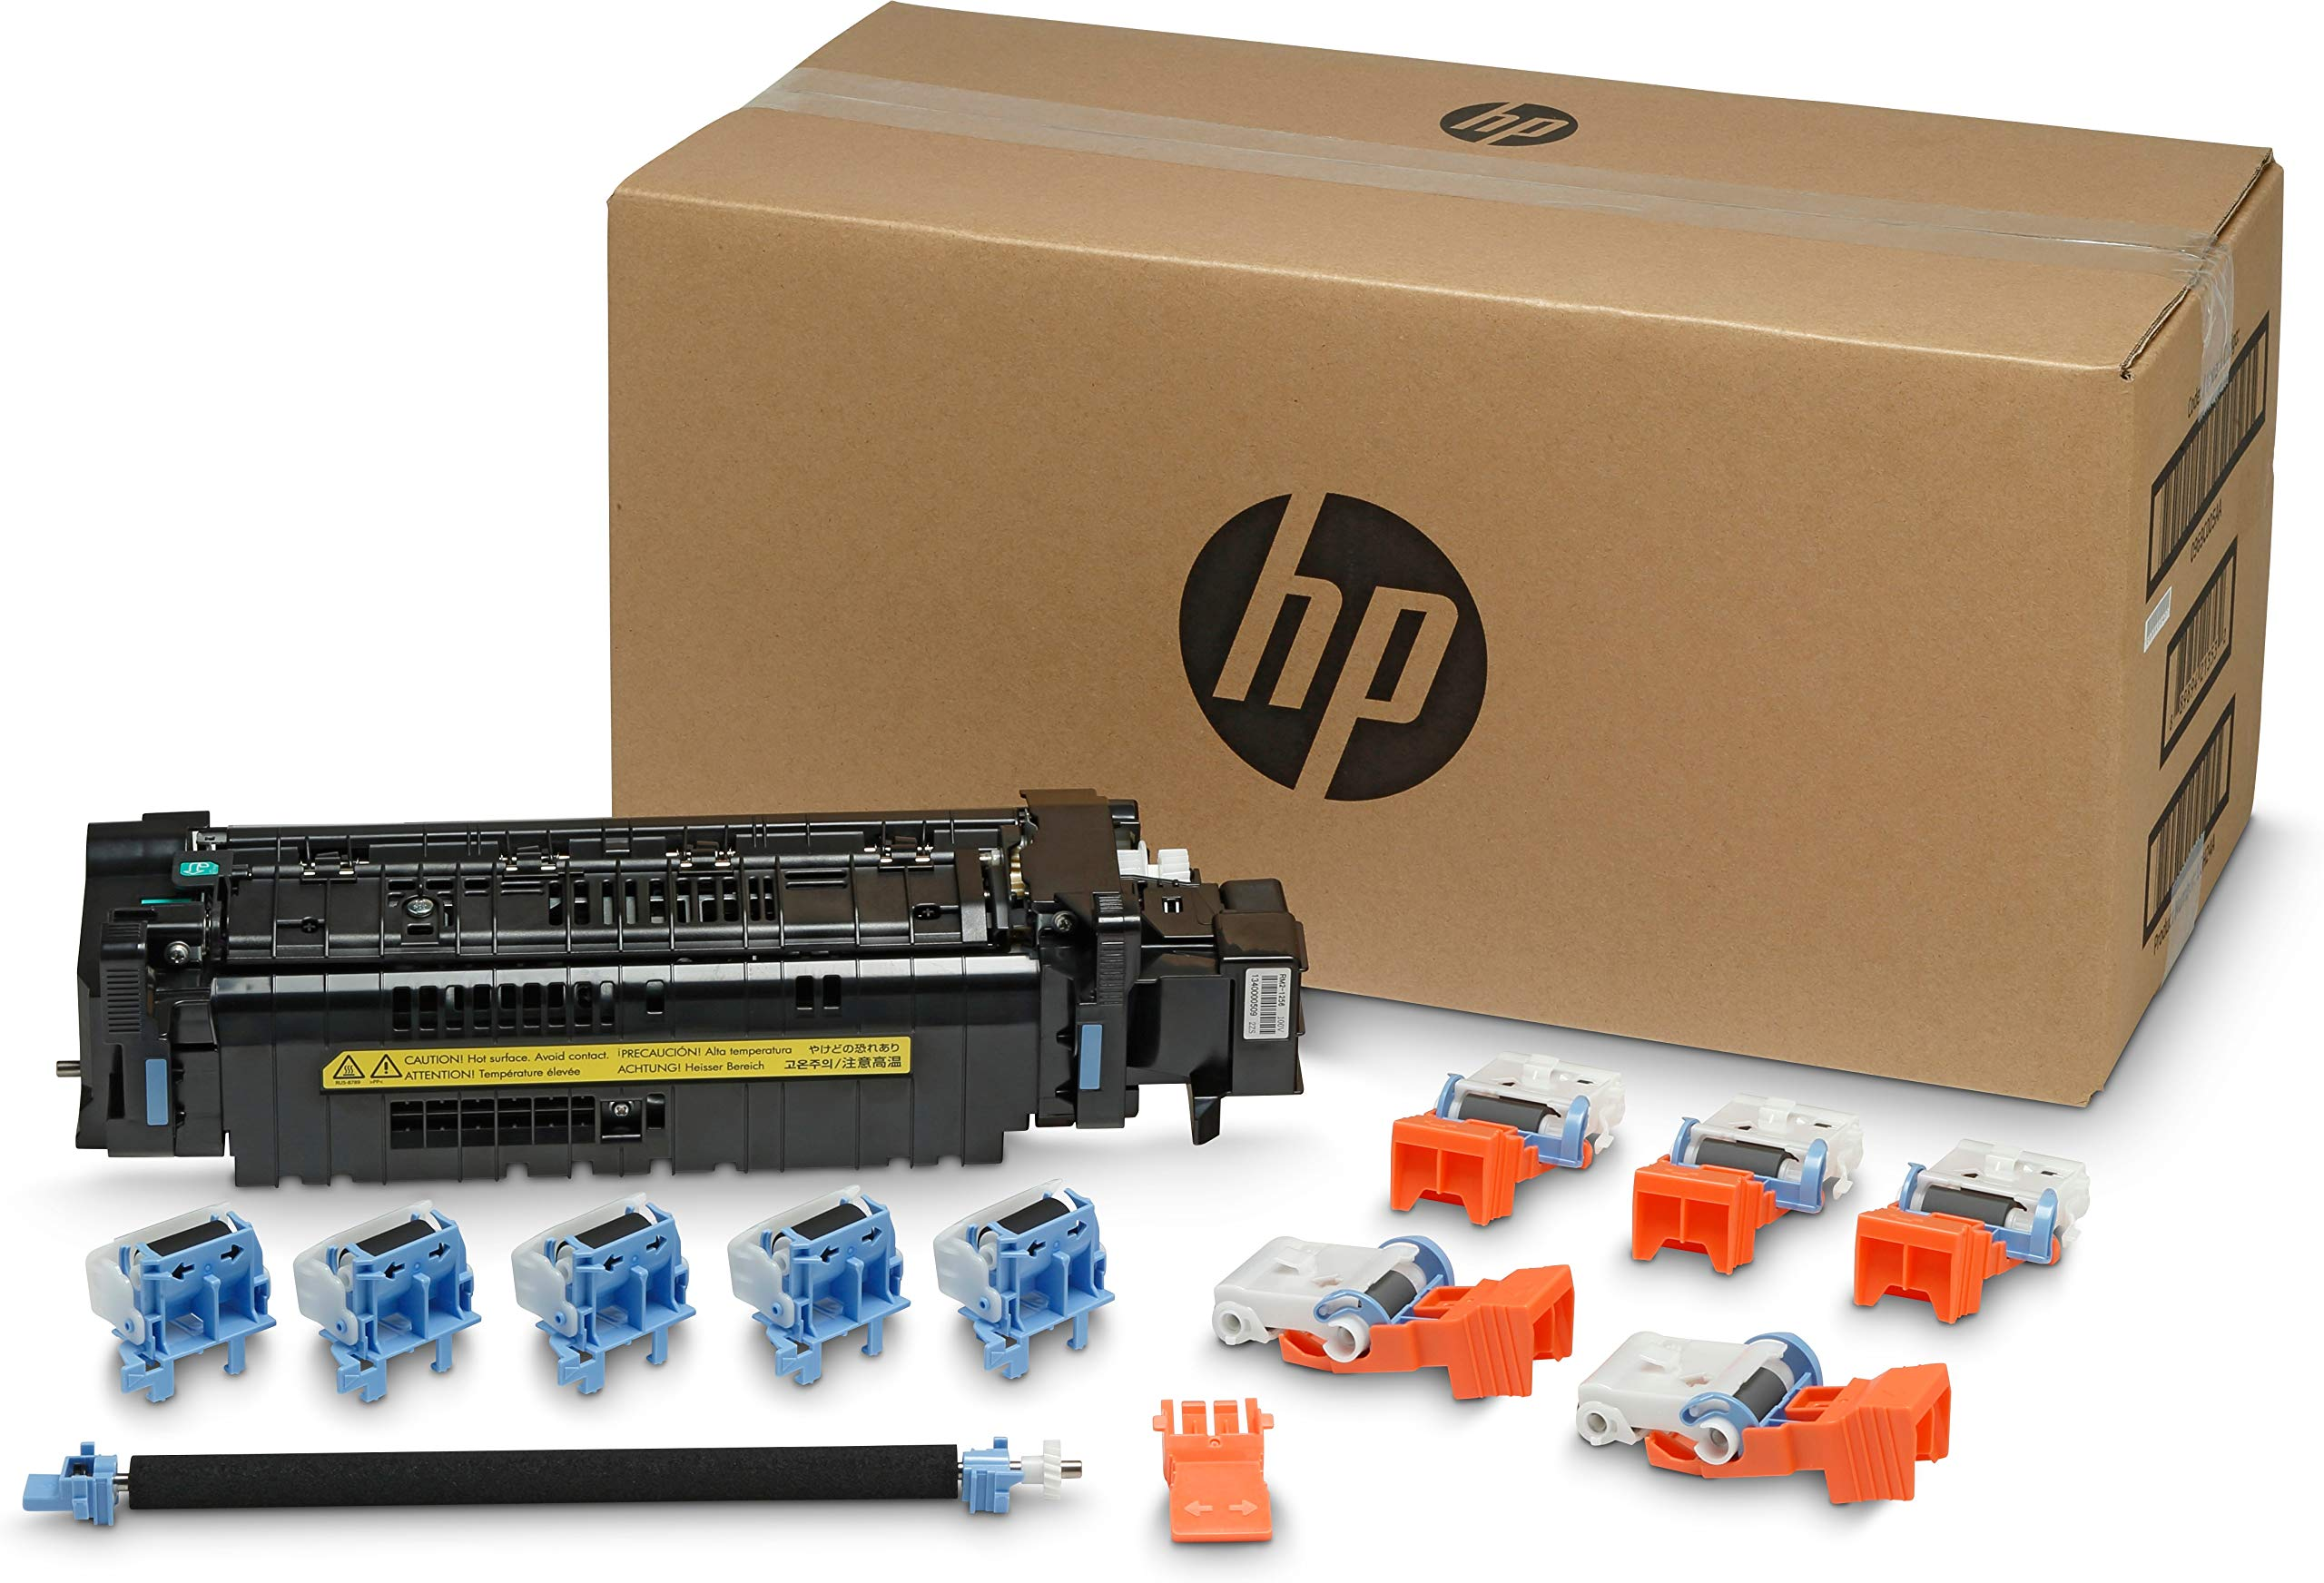 HP P1B91A Original Maintenance Kit for M652, M653 Printers by HP (Image #1)